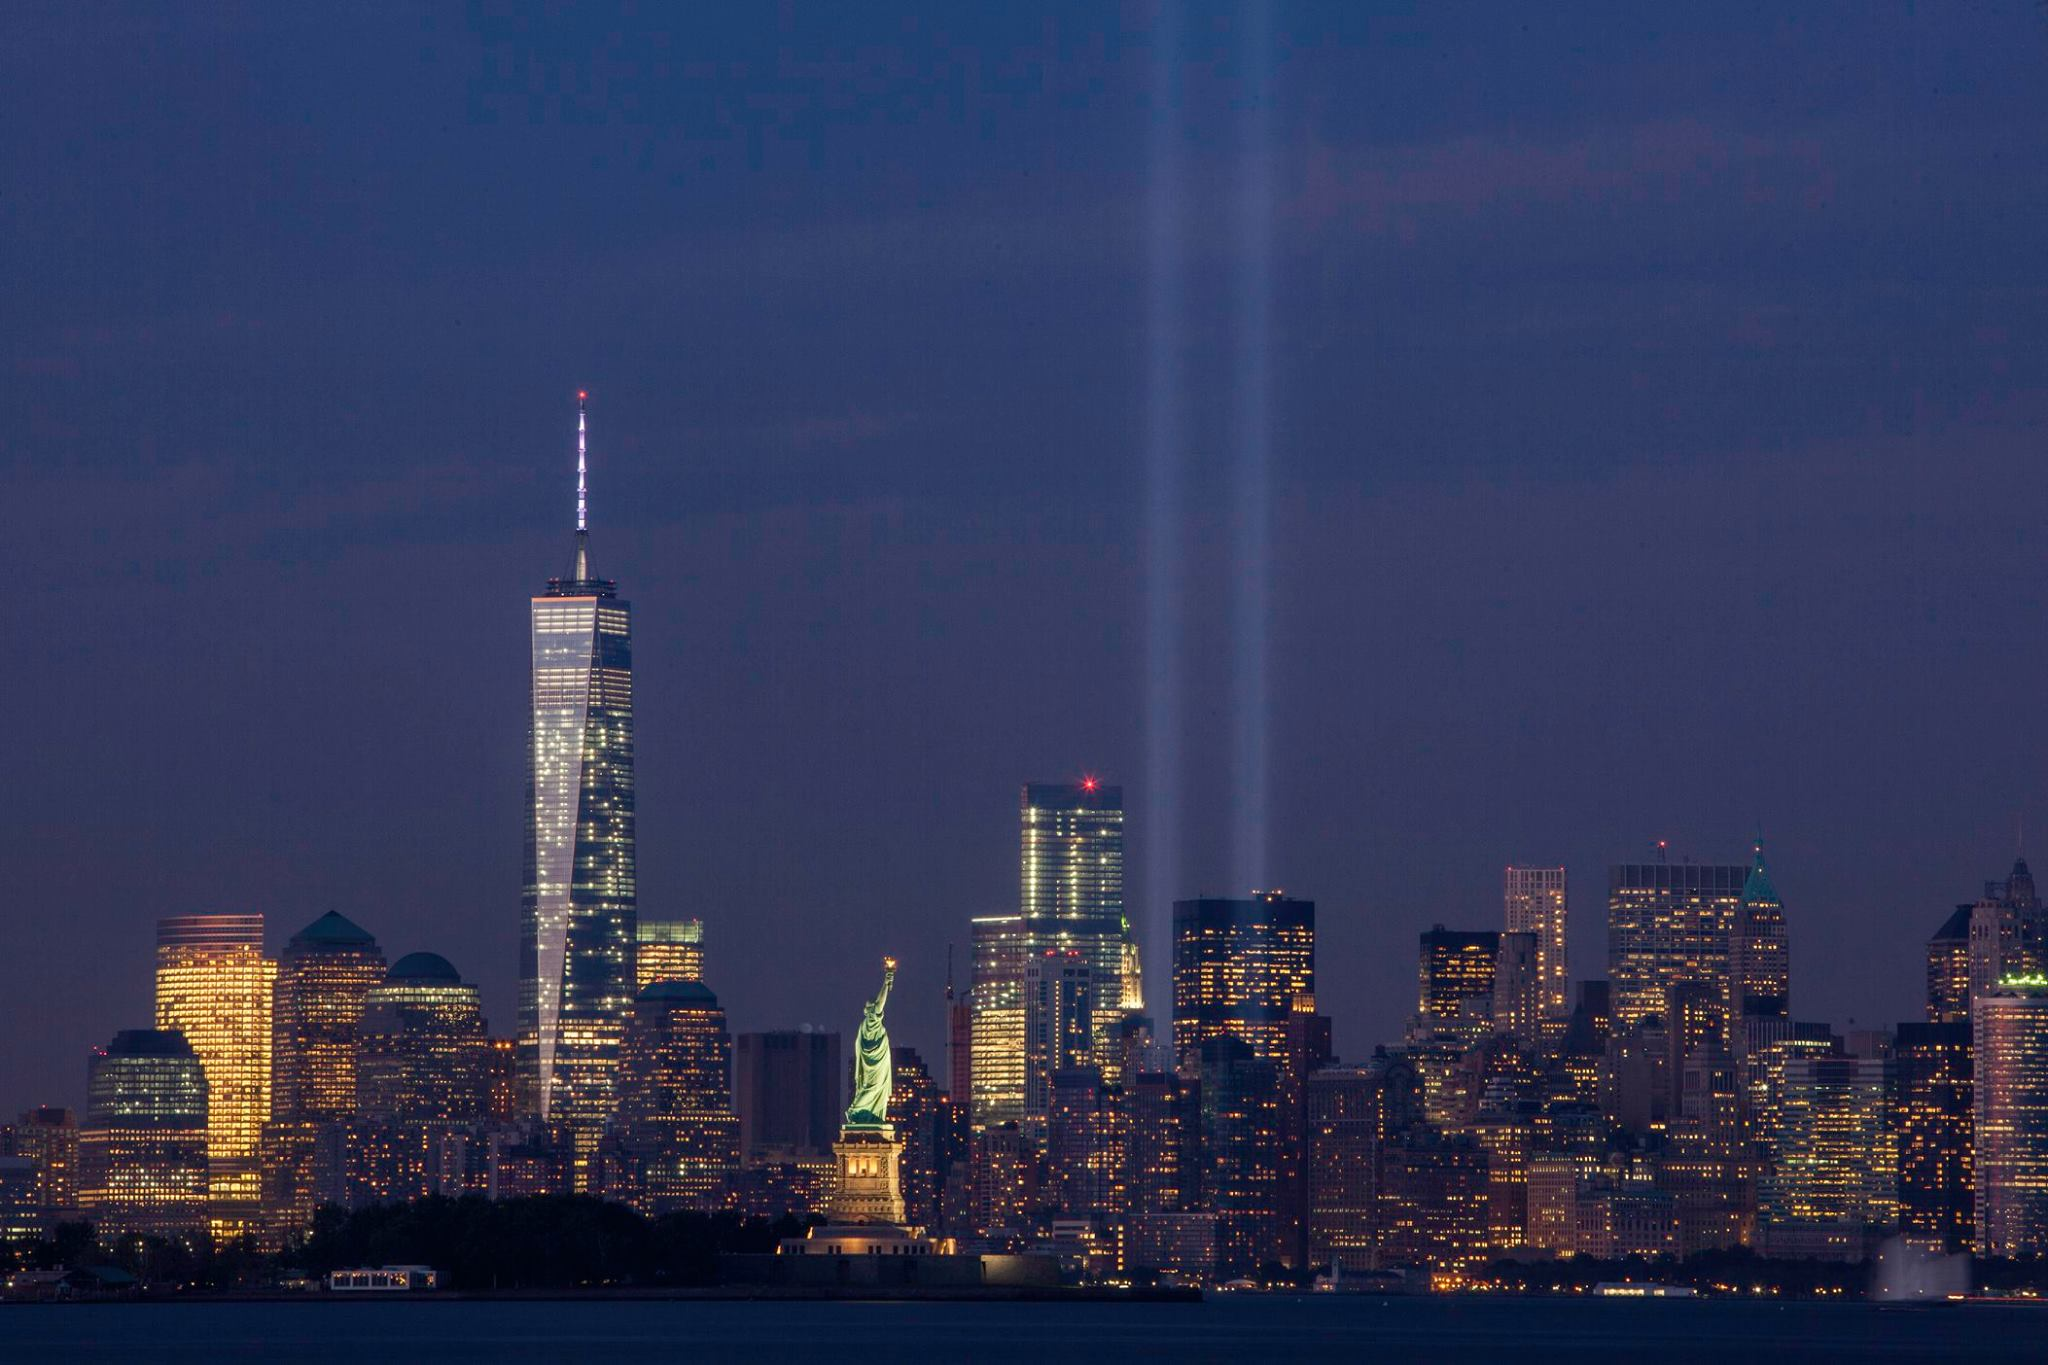 Image from the Tribute in Light on September 11, 2014. It shows the New York City skyline with two beams of light representing the fallen towers.